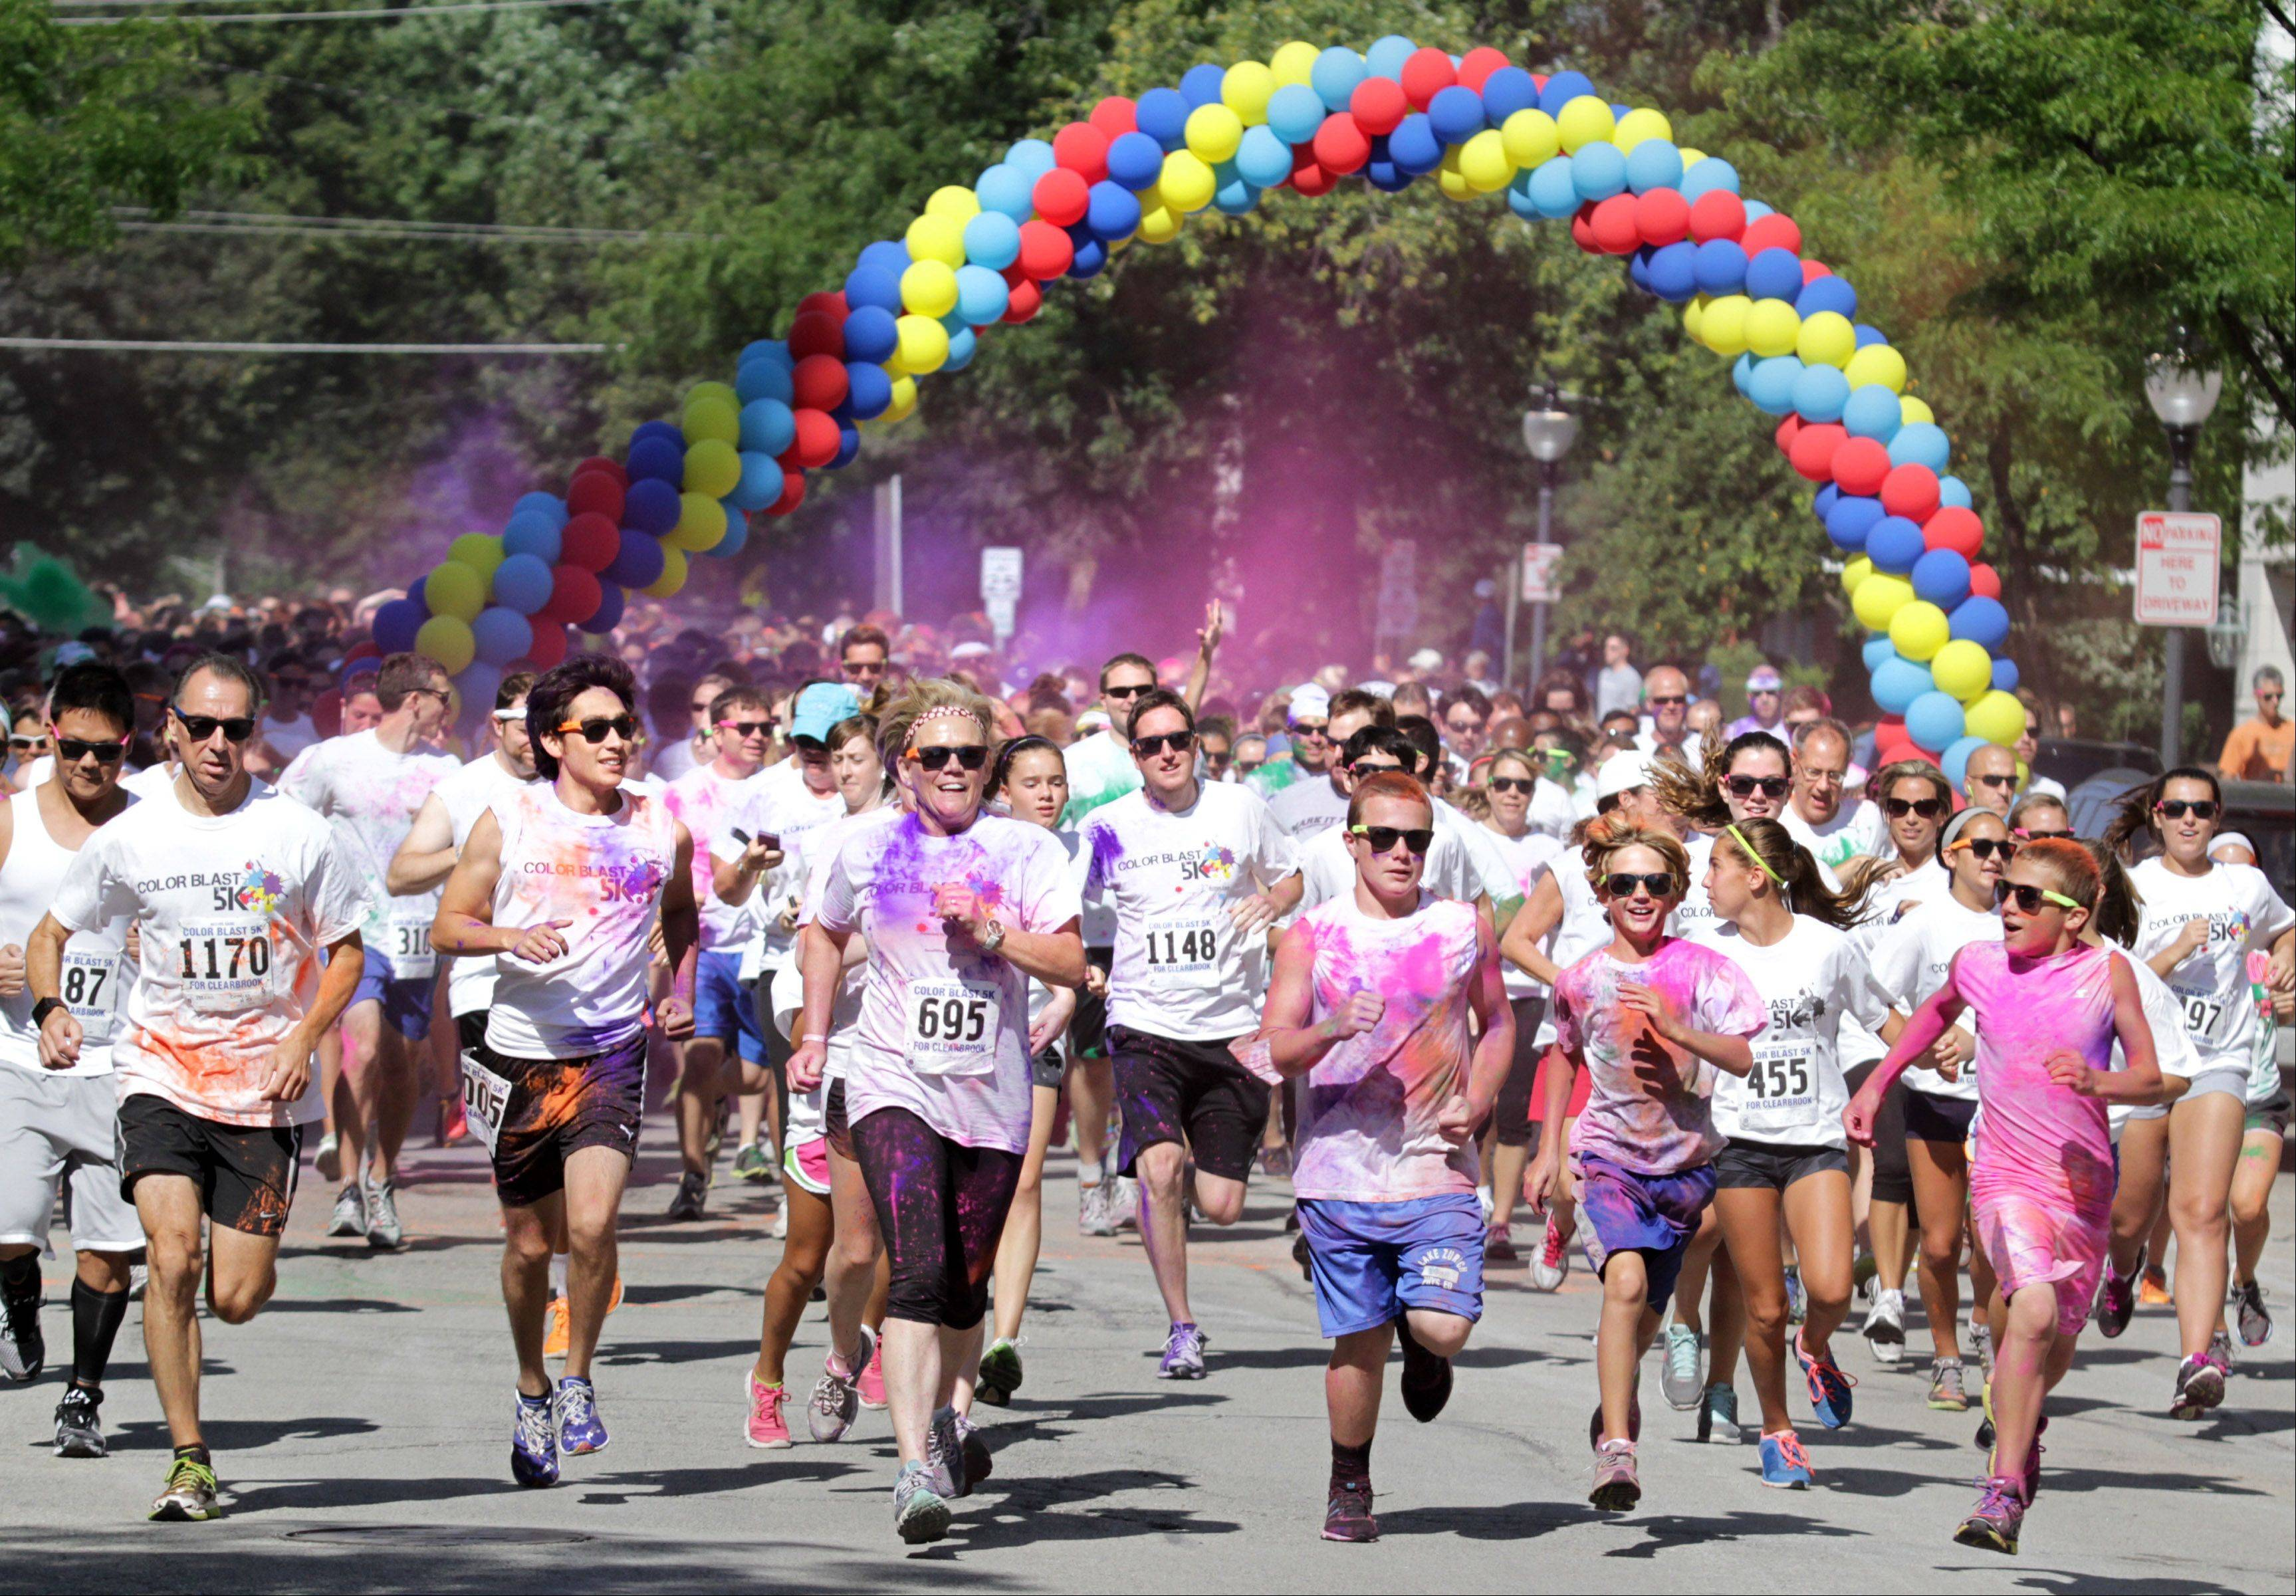 The start of the first Active Care Color Blast 5k run in Arlington Heights on Saturday. All proceeds go to Clearbrook.